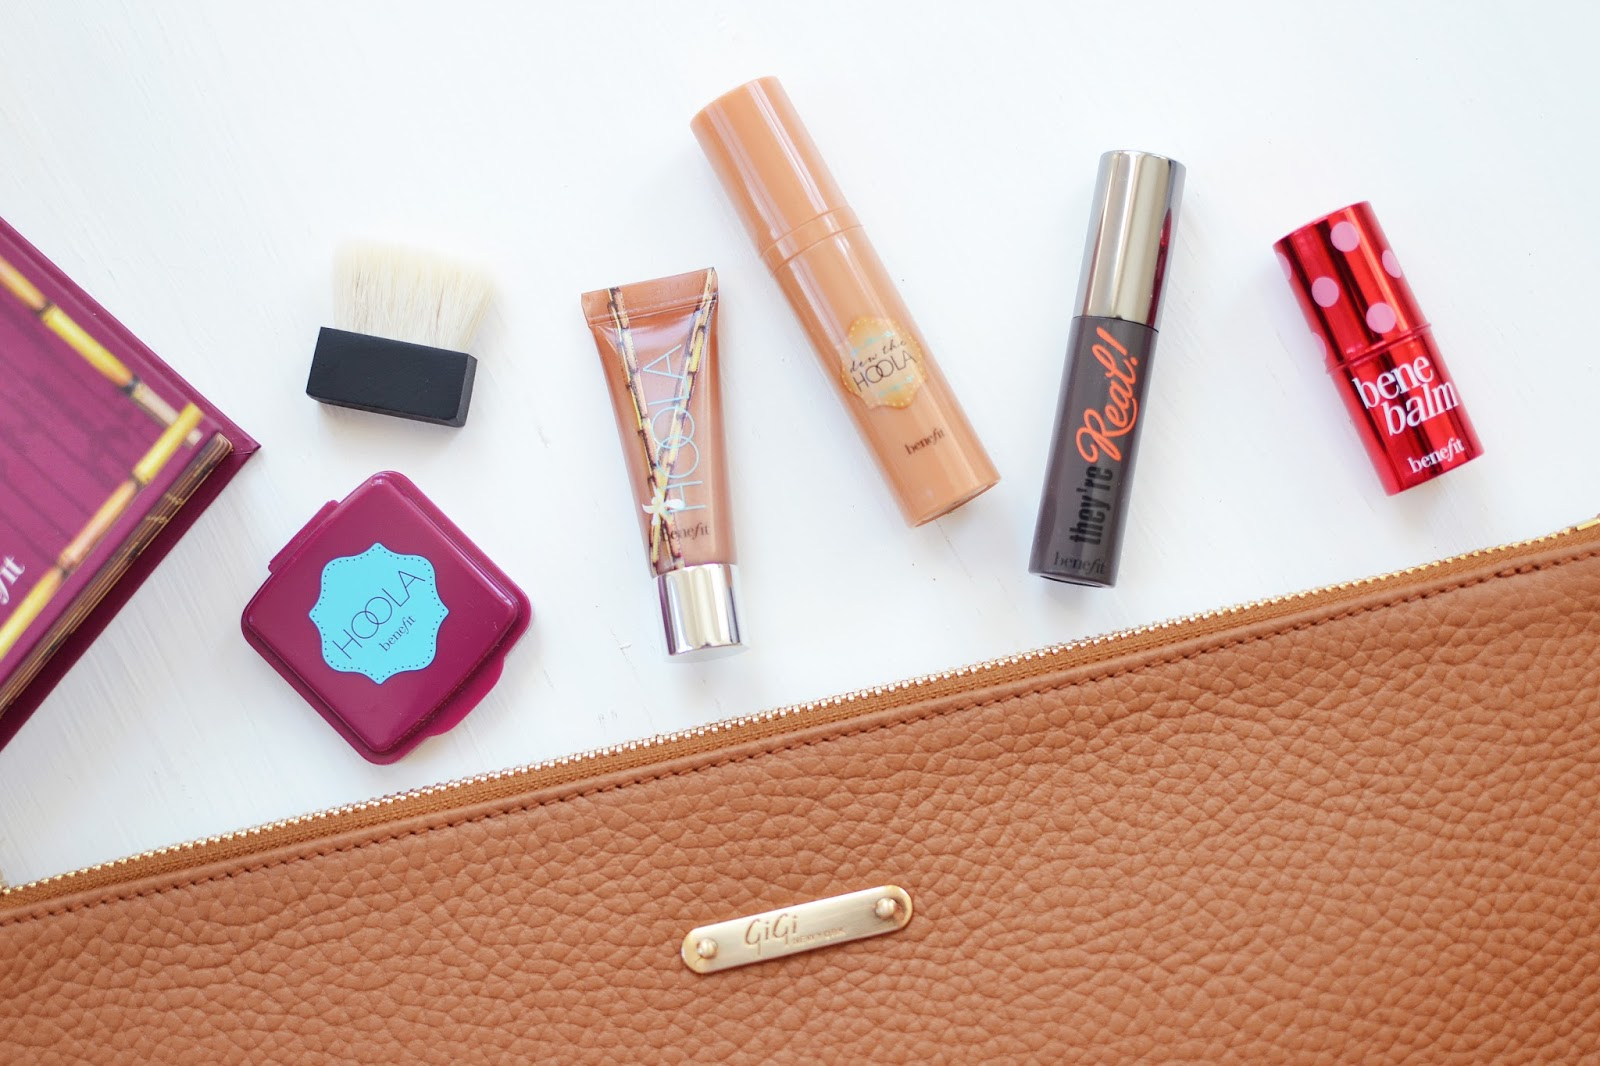 Benefit's Do The Hoola Kit, do the hoola